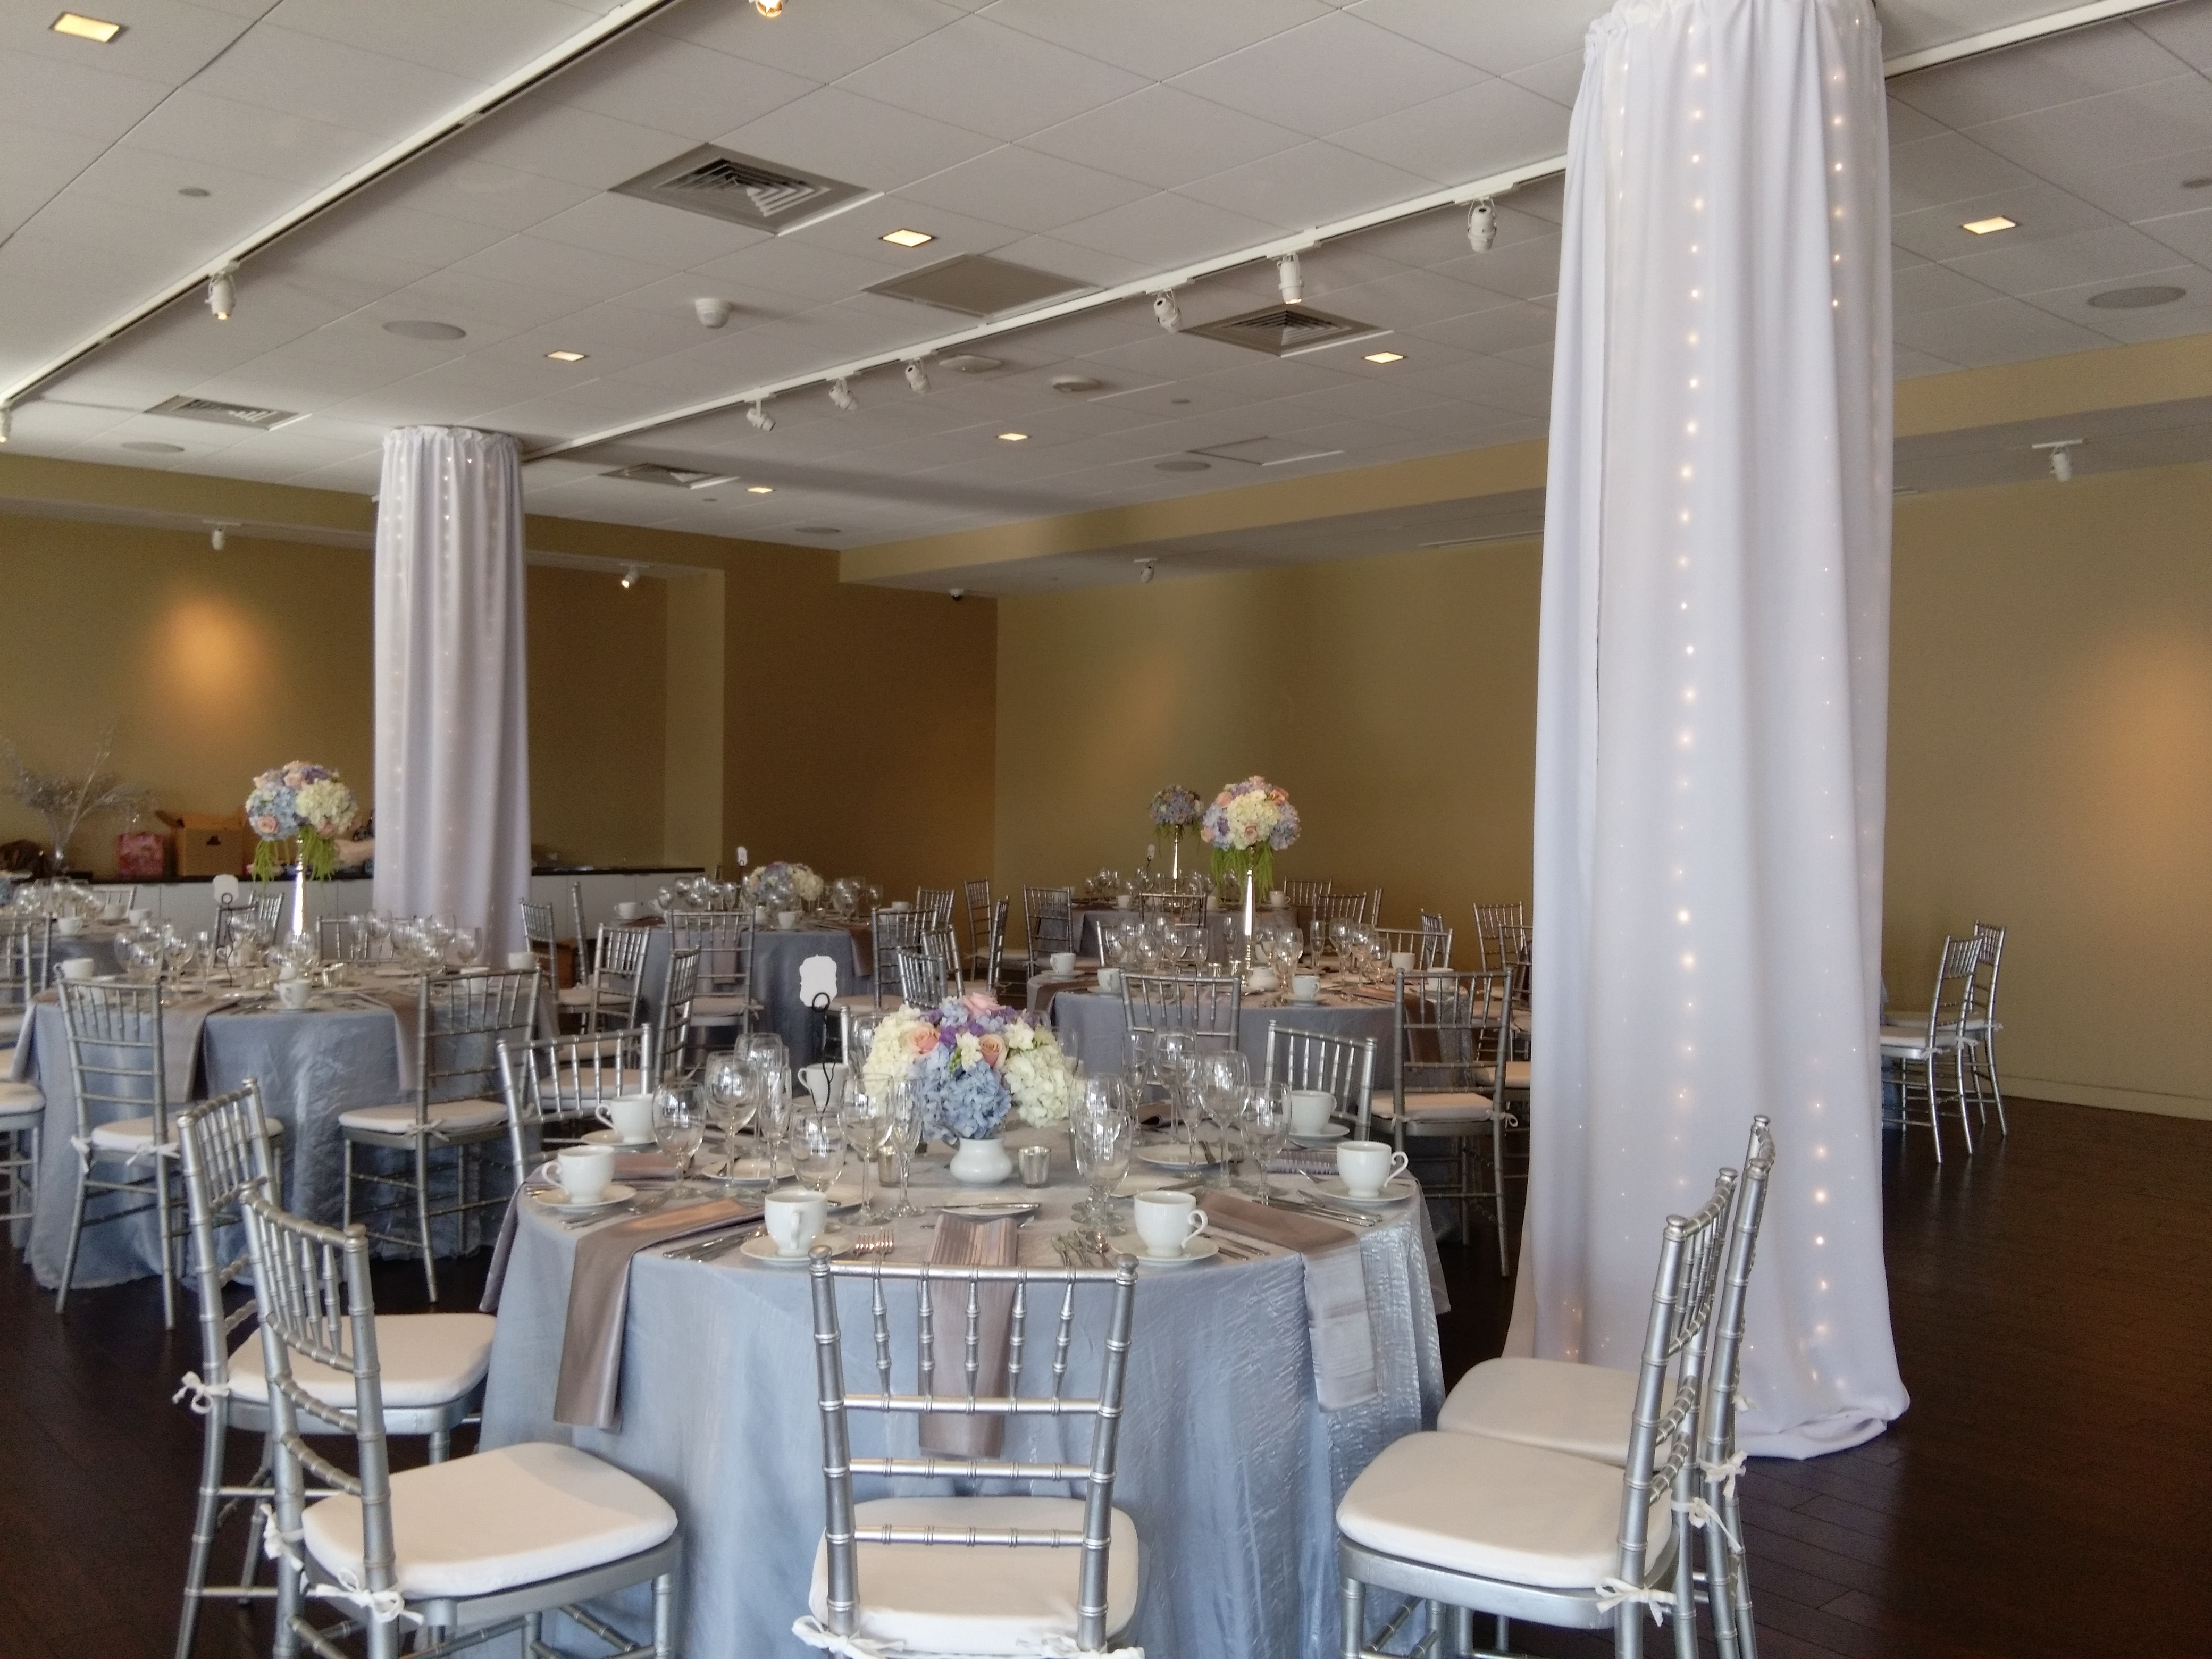 portable pipe drapes drape using rsvp waco extracoeventbackdrop draping and renting